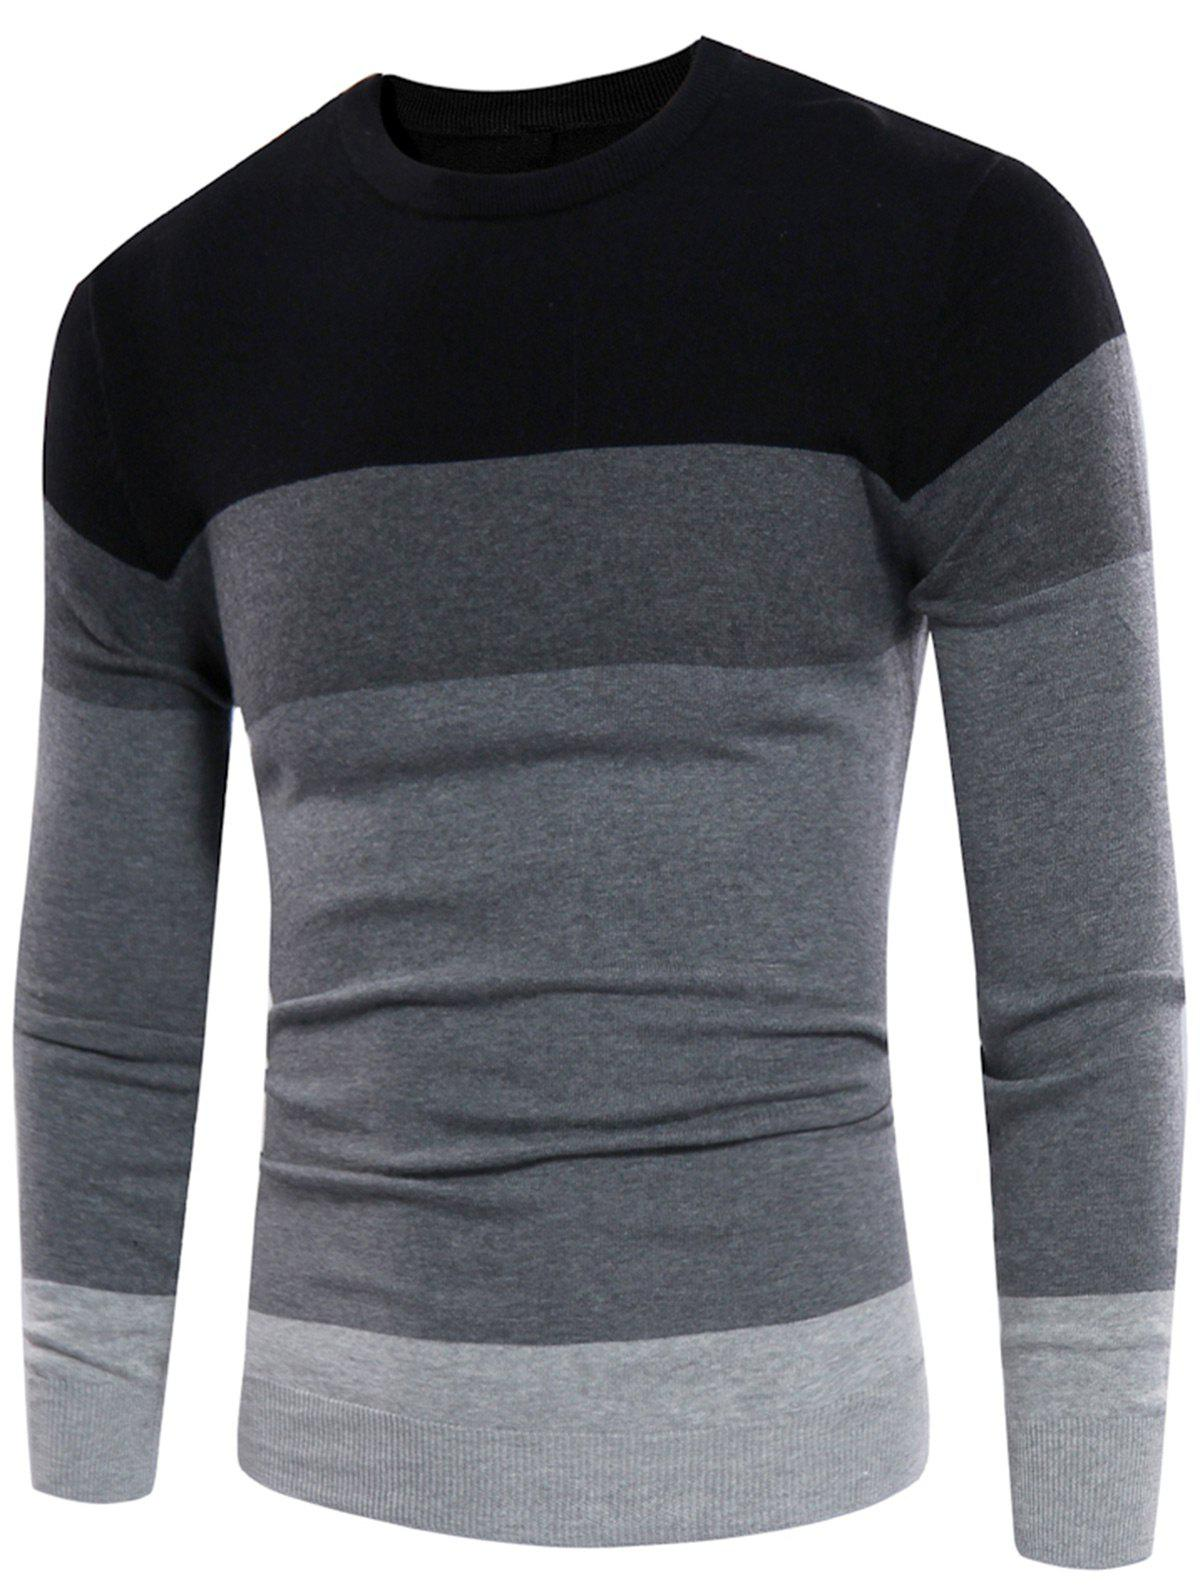 Crew Neck Rib Design Color Block Panel Sweater - BLACK/GREY XL